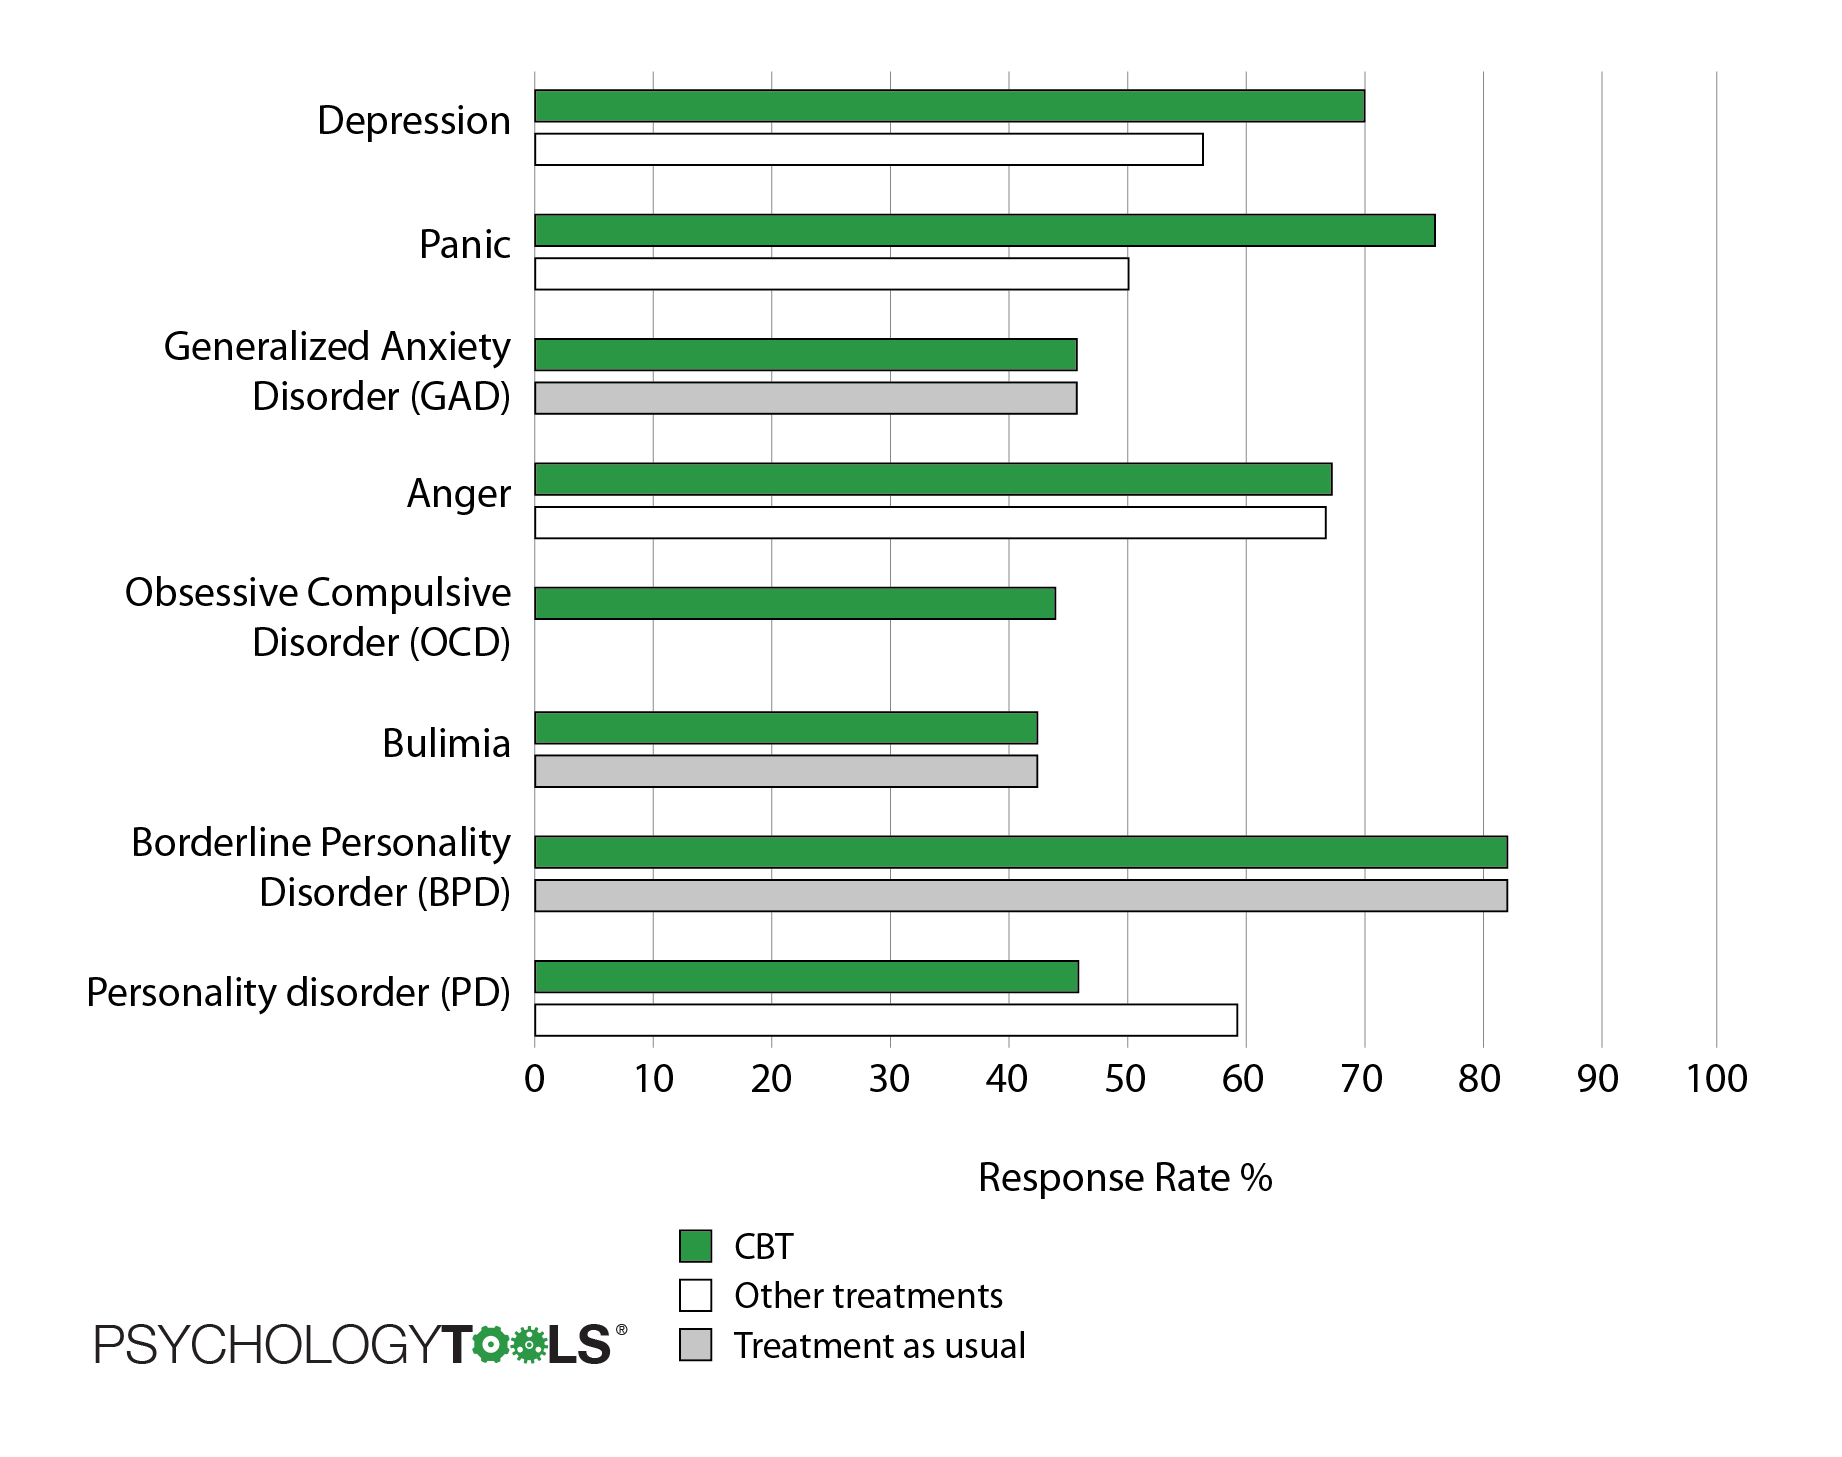 Response rates for CBT treatment versus other treatments